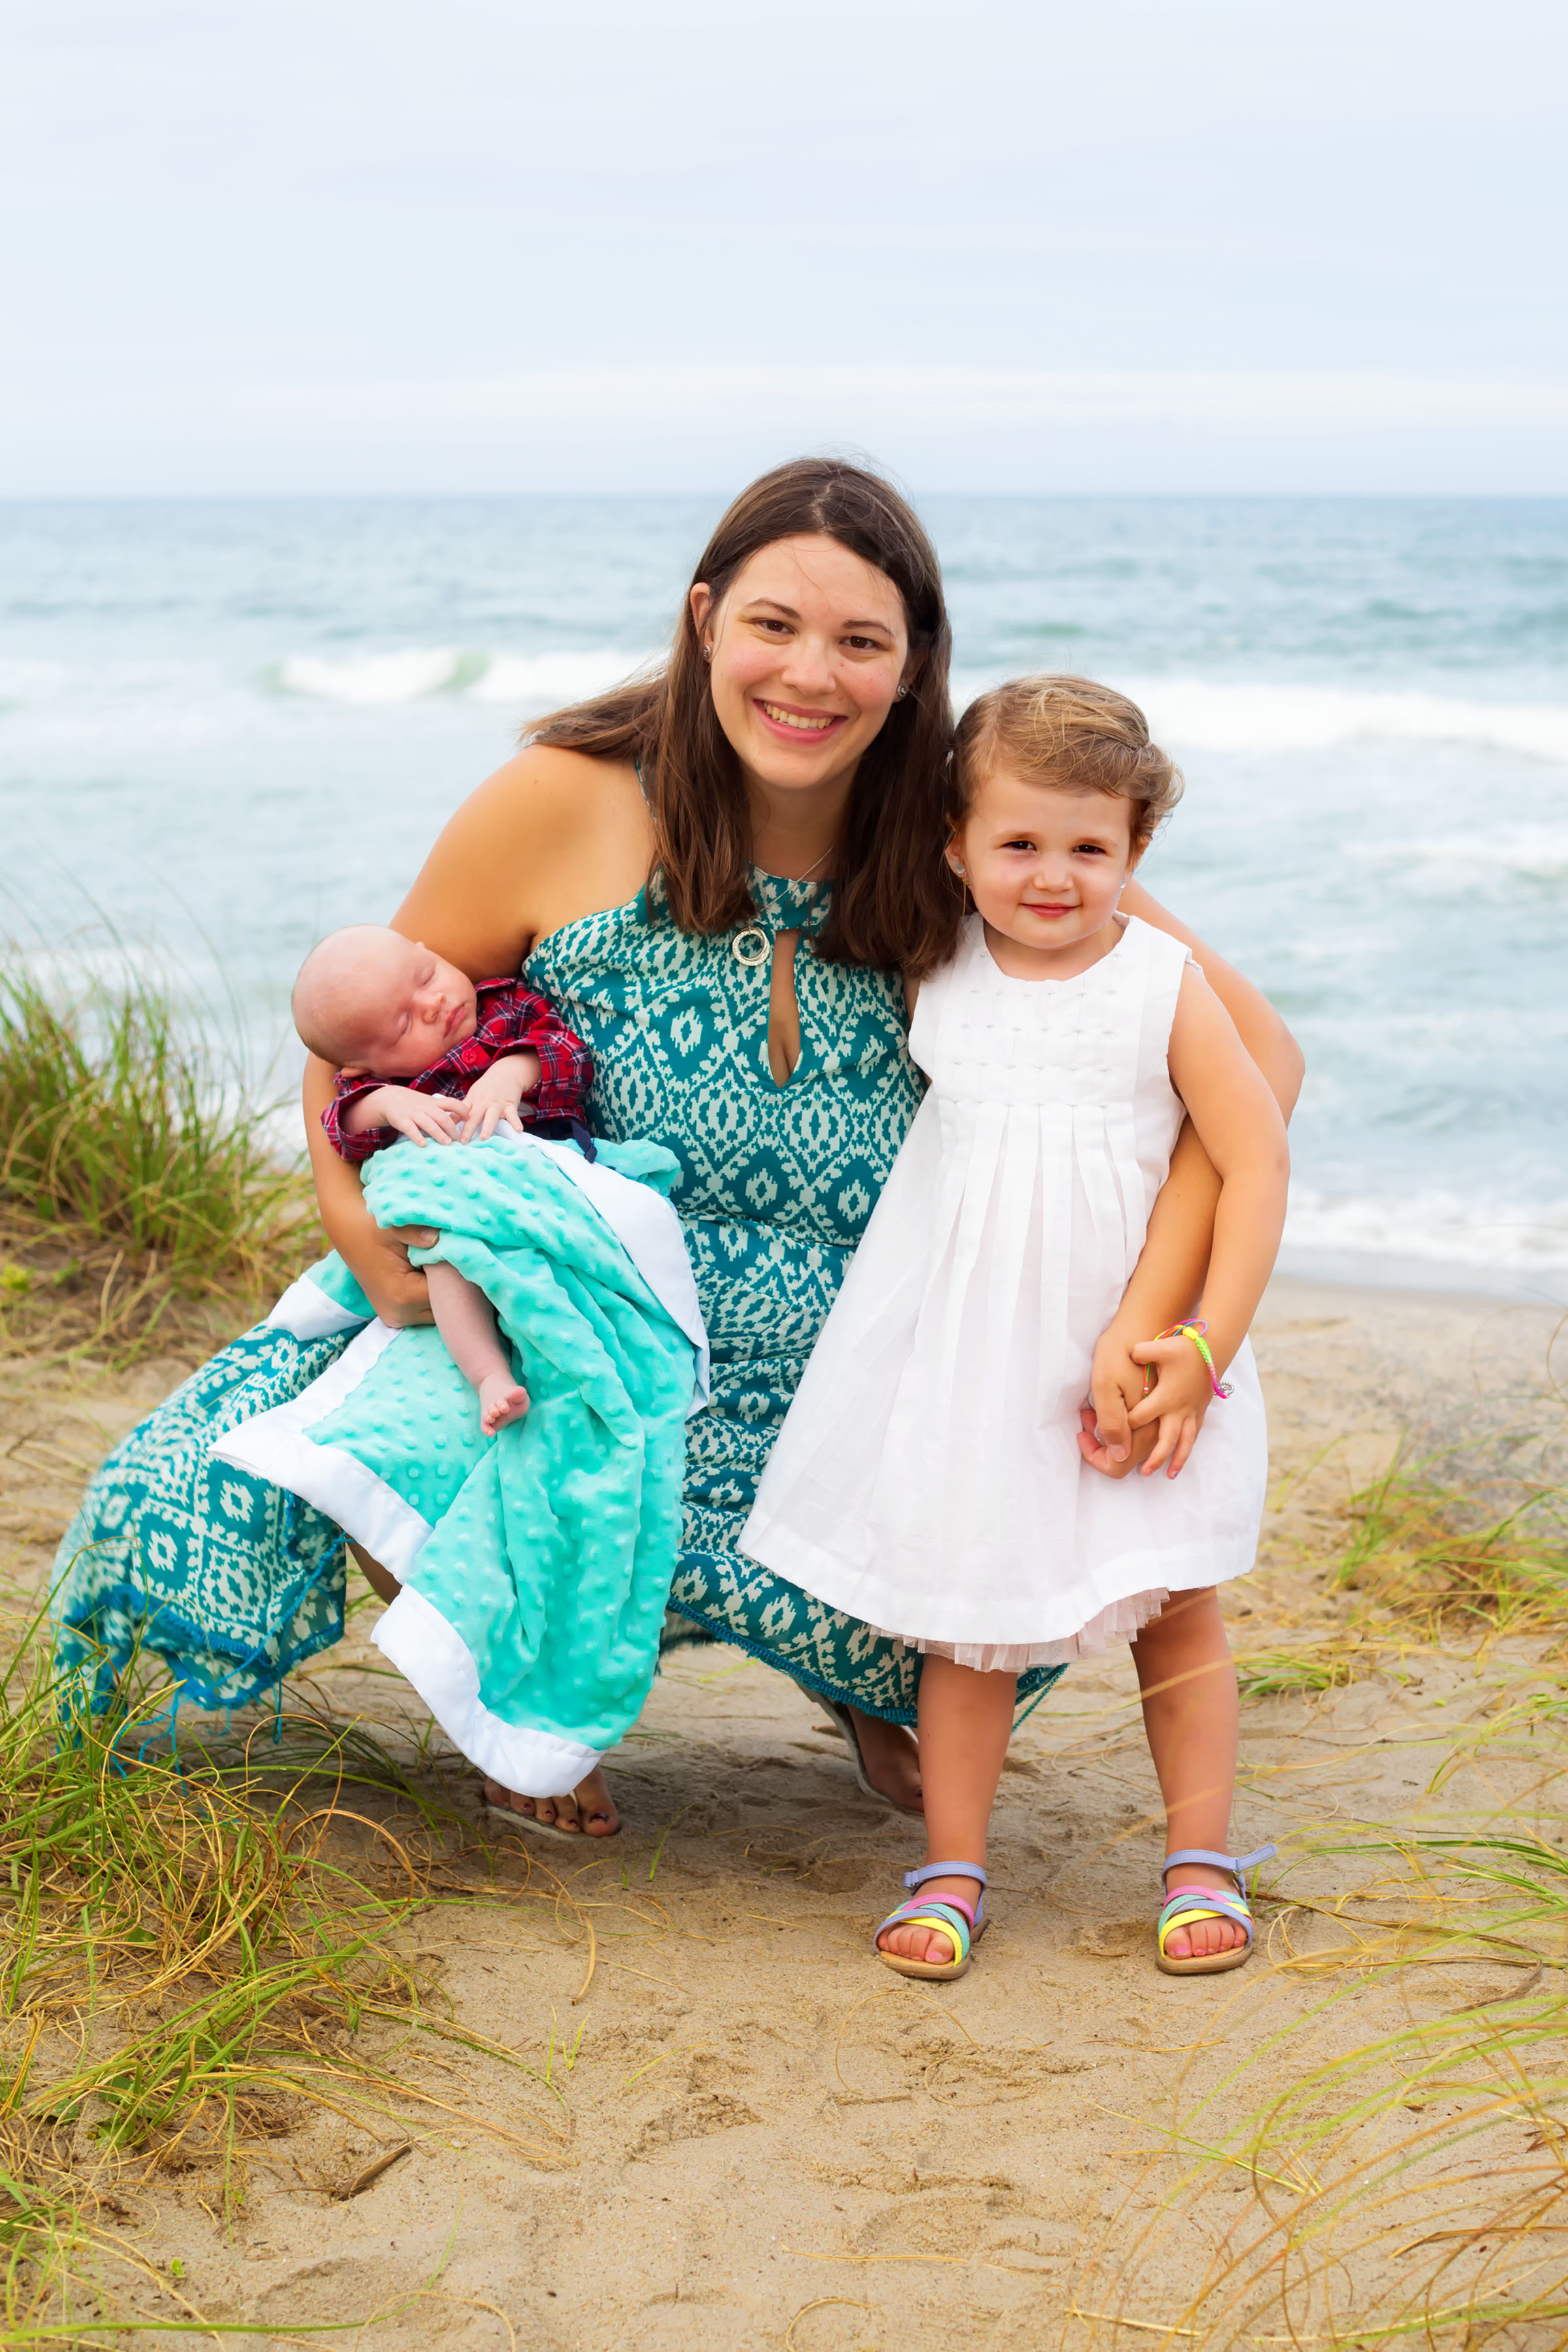 Fort-Fisher-Fall-Session-Michelle-&-The-Fam-29.jpg